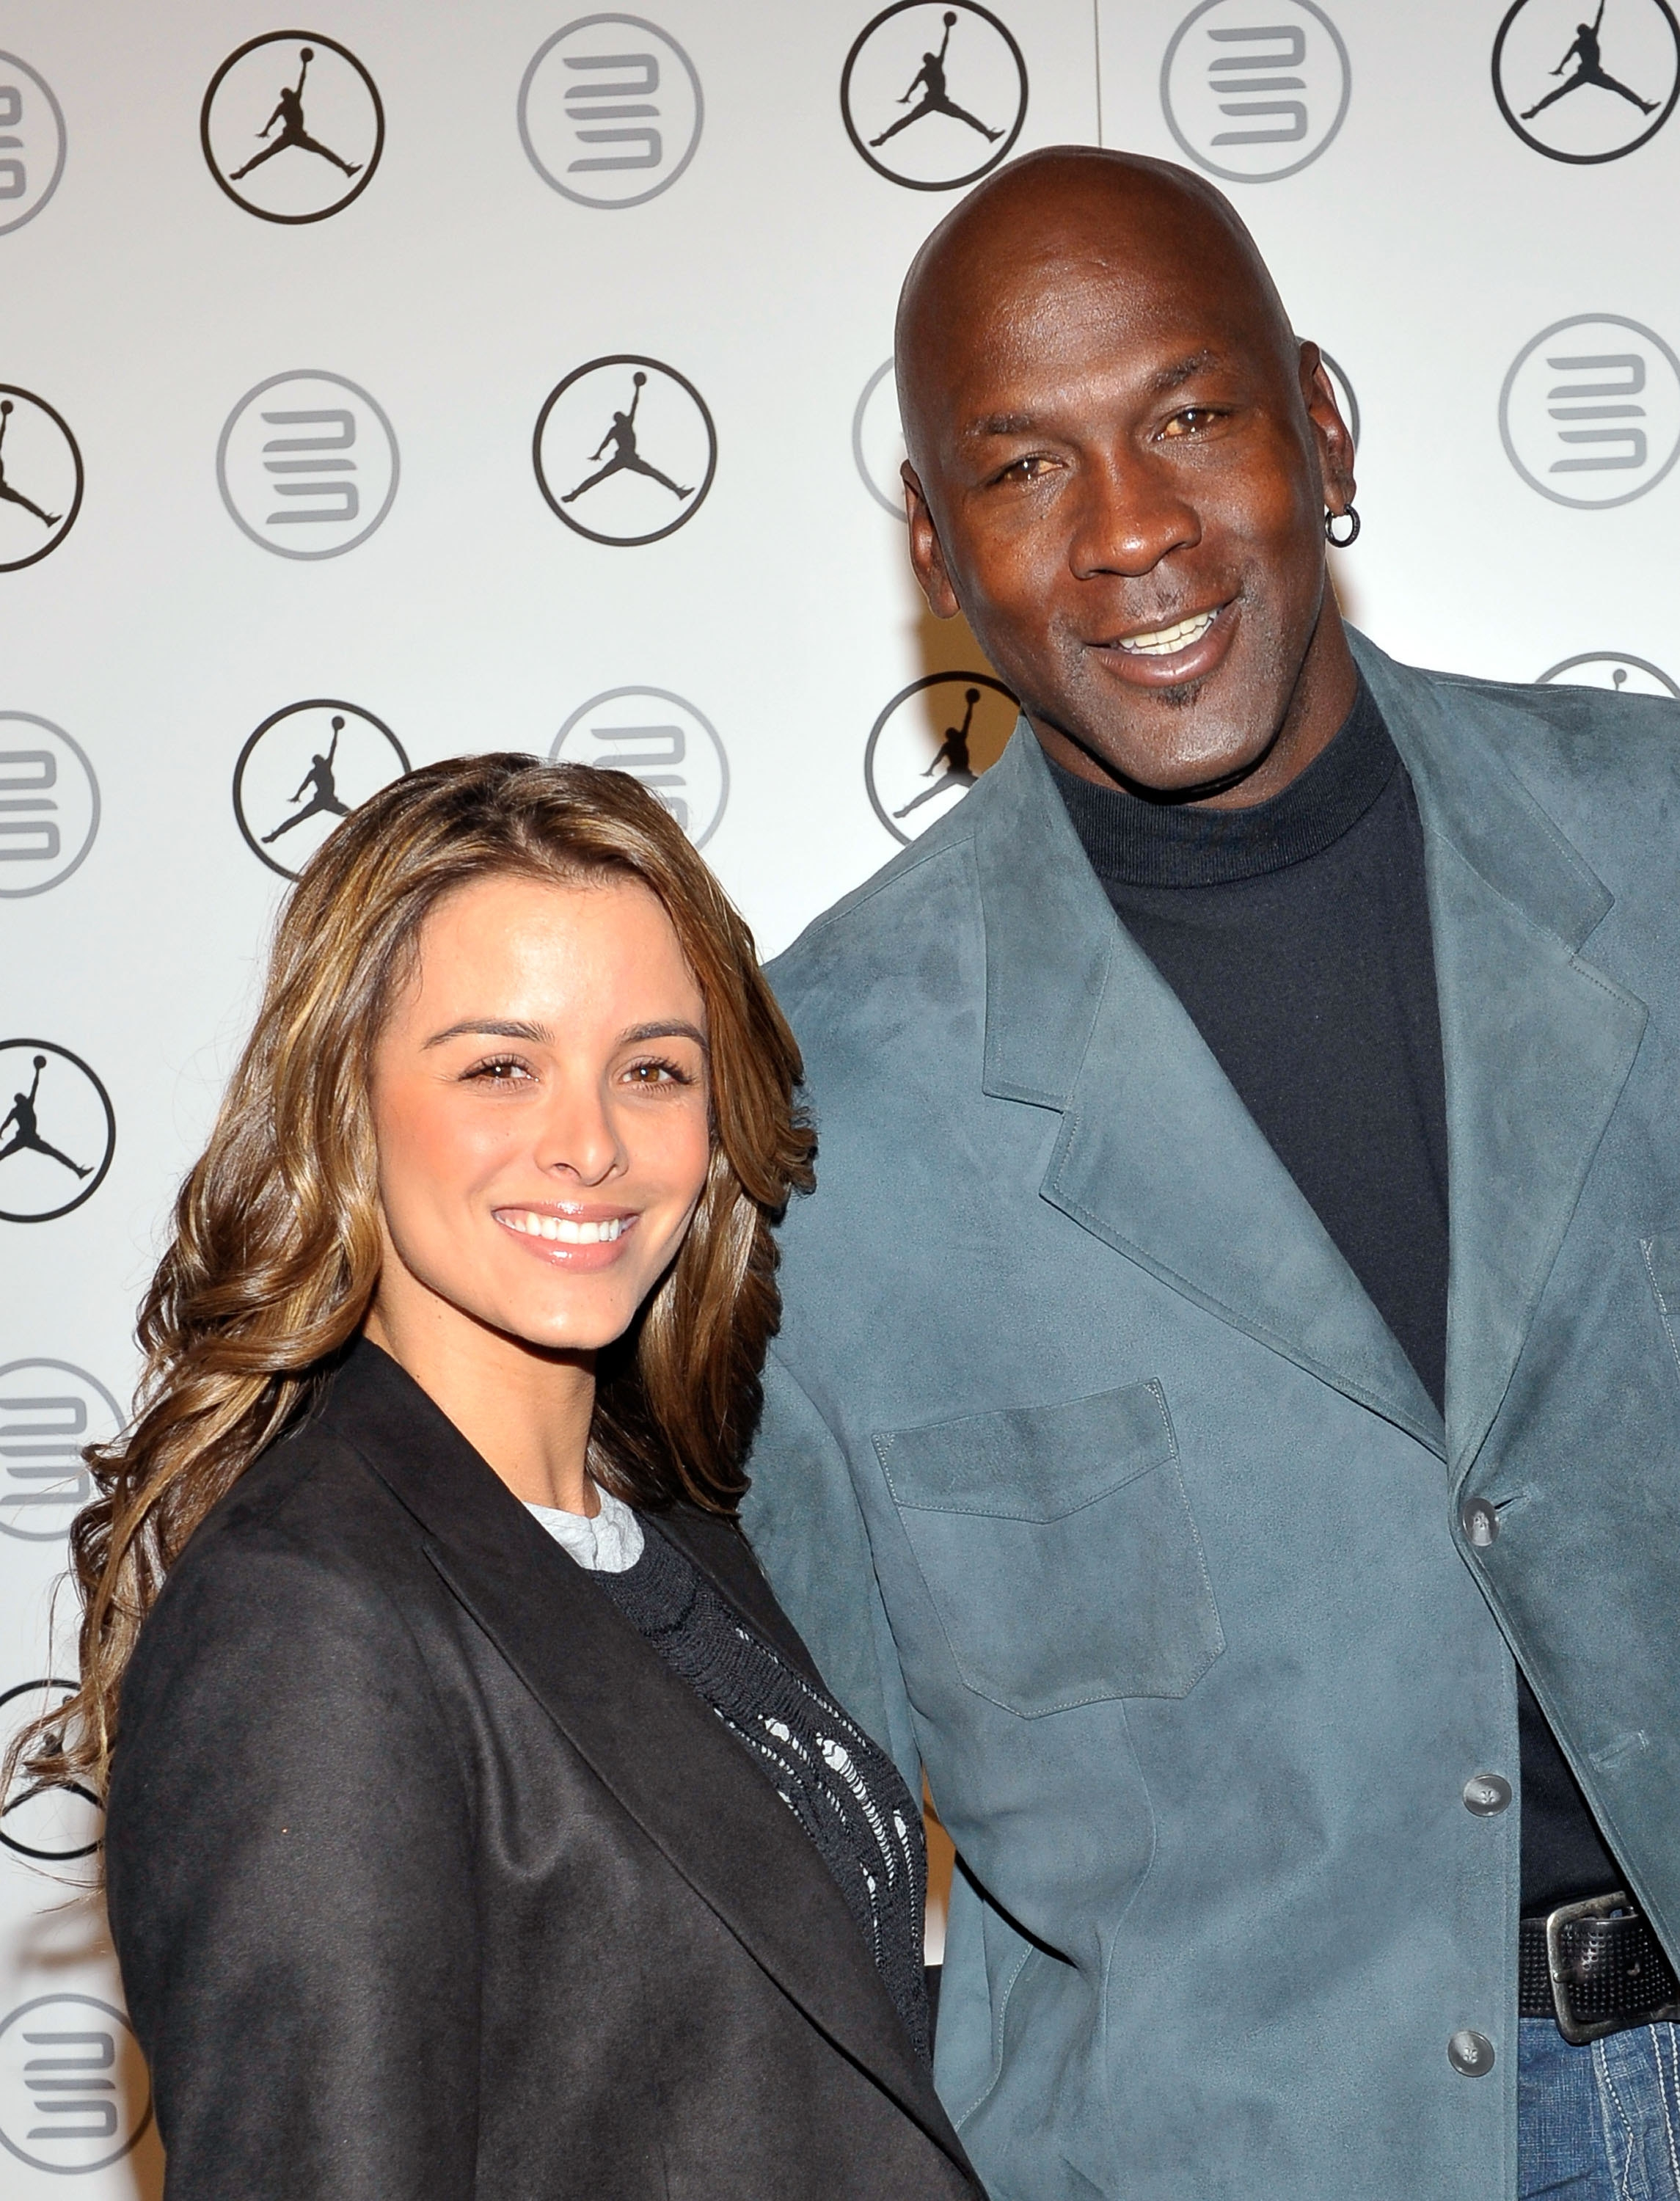 Michael Jordan and his wife, Yvette, became parents of identical twin daughters Sunday in West Palm Beach, Fla.